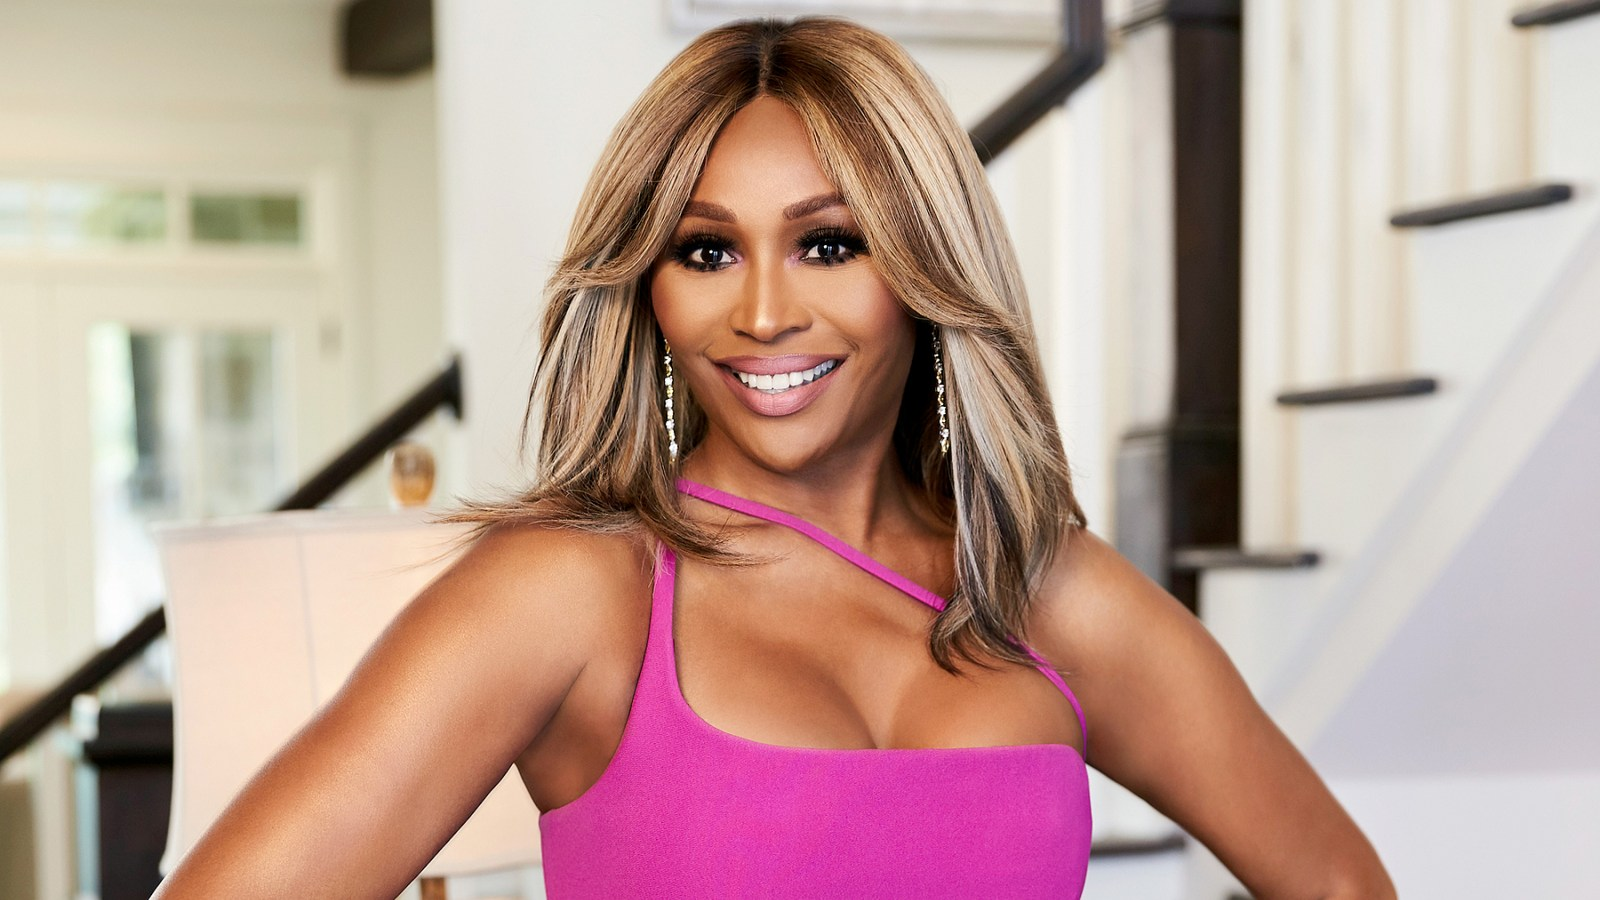 RHOA Mania: NeNe Leakes Posted Live From Andy Cohen's Baby Shower And Cynthia Bailey Steals The Show - Watch Her Video